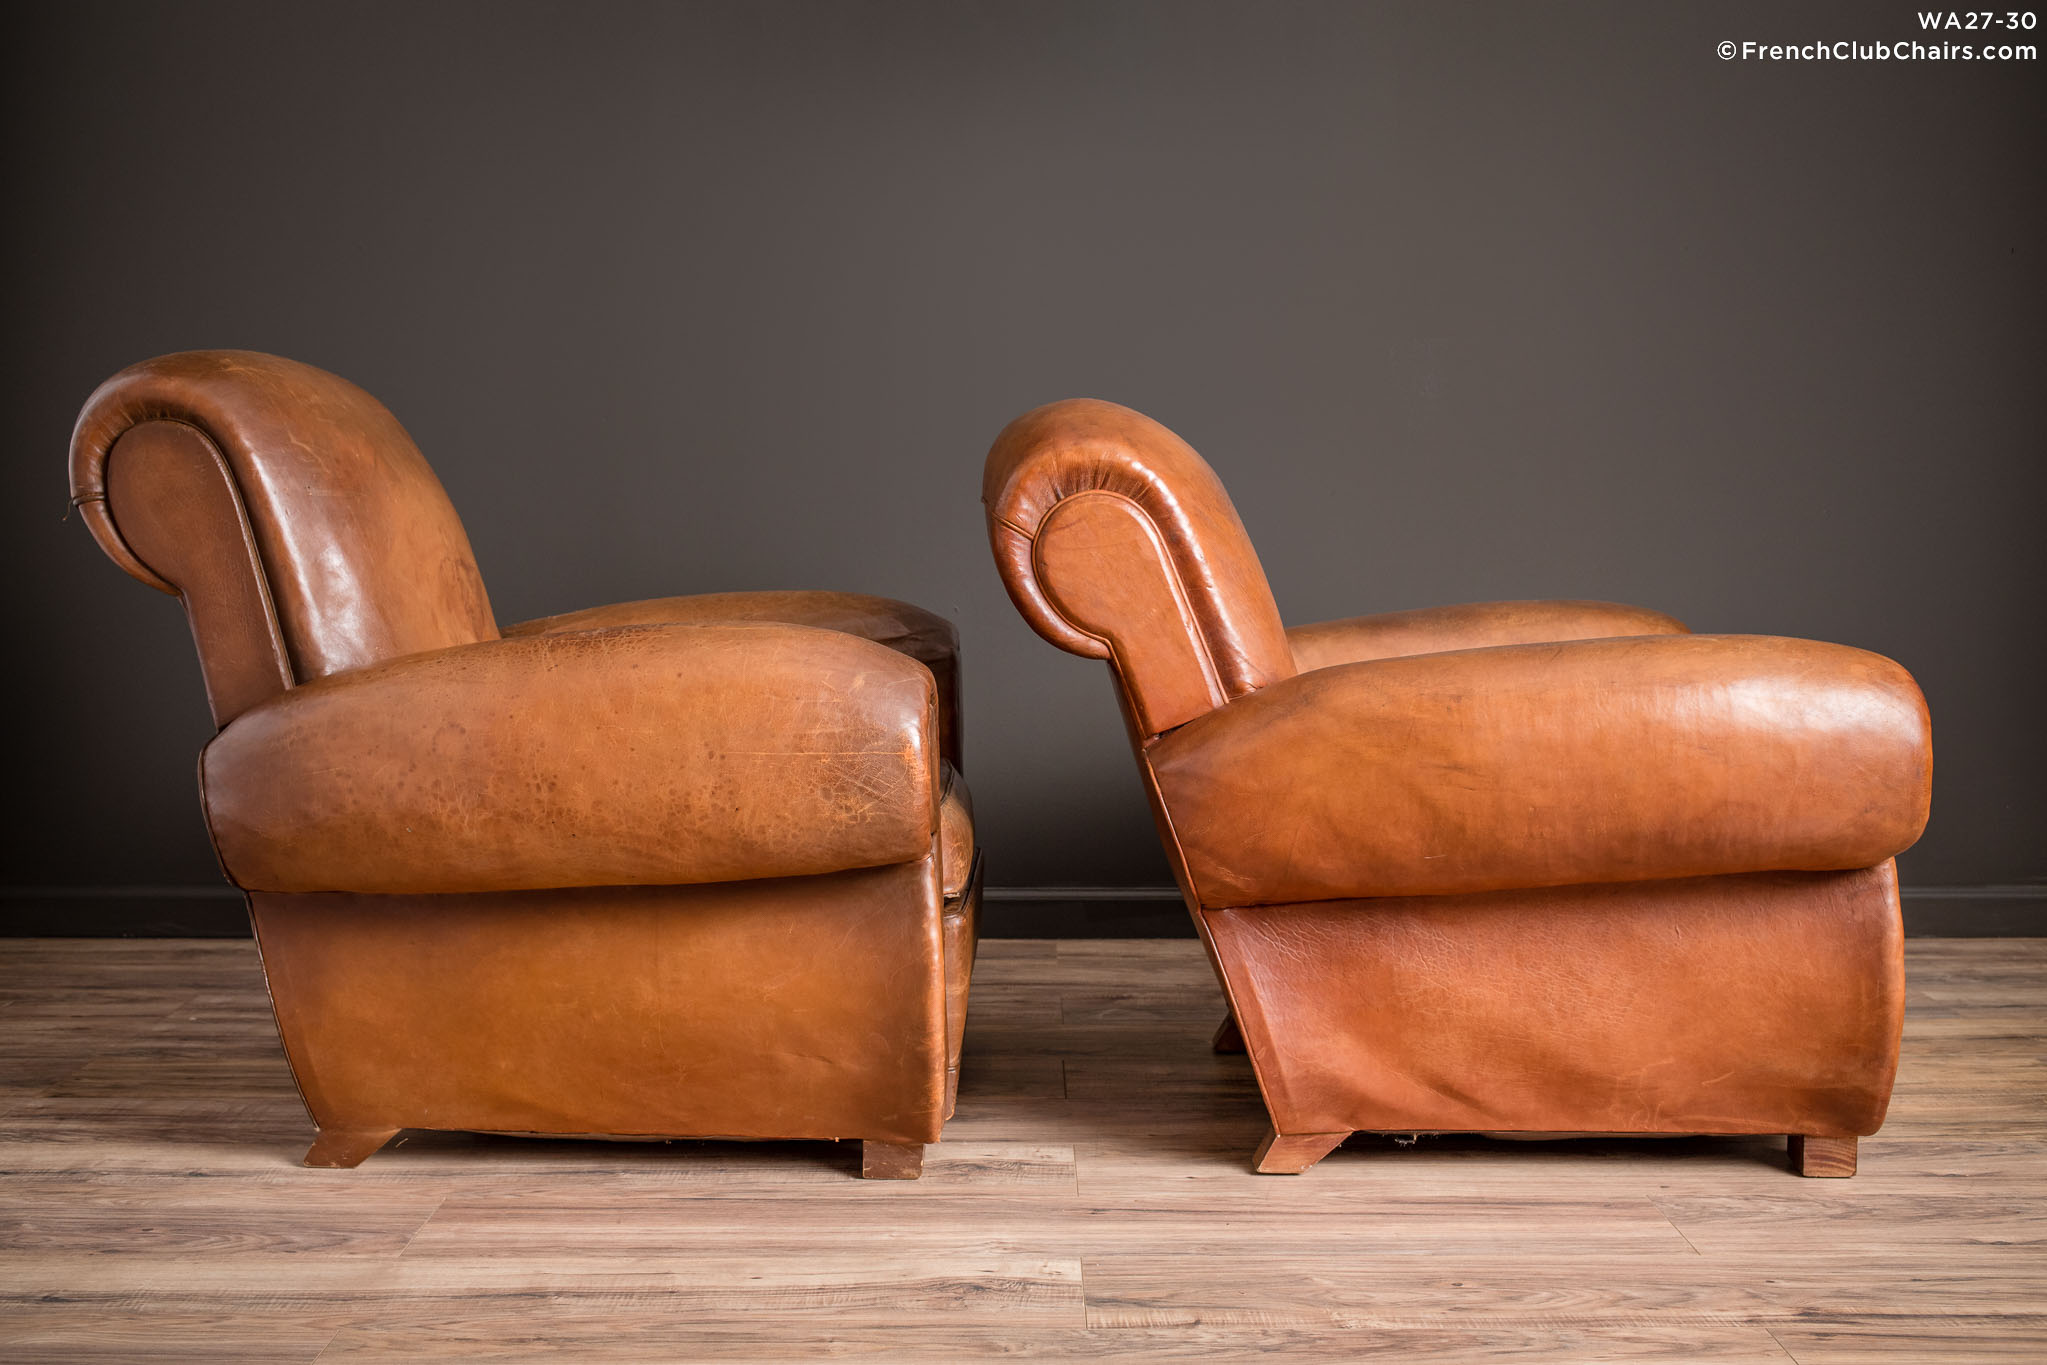 WA_27-30_Giant_Flare_Rollback_Pair_R_3RT-v01-williams-antiks-leather-french-club-chair-wa_fcccom